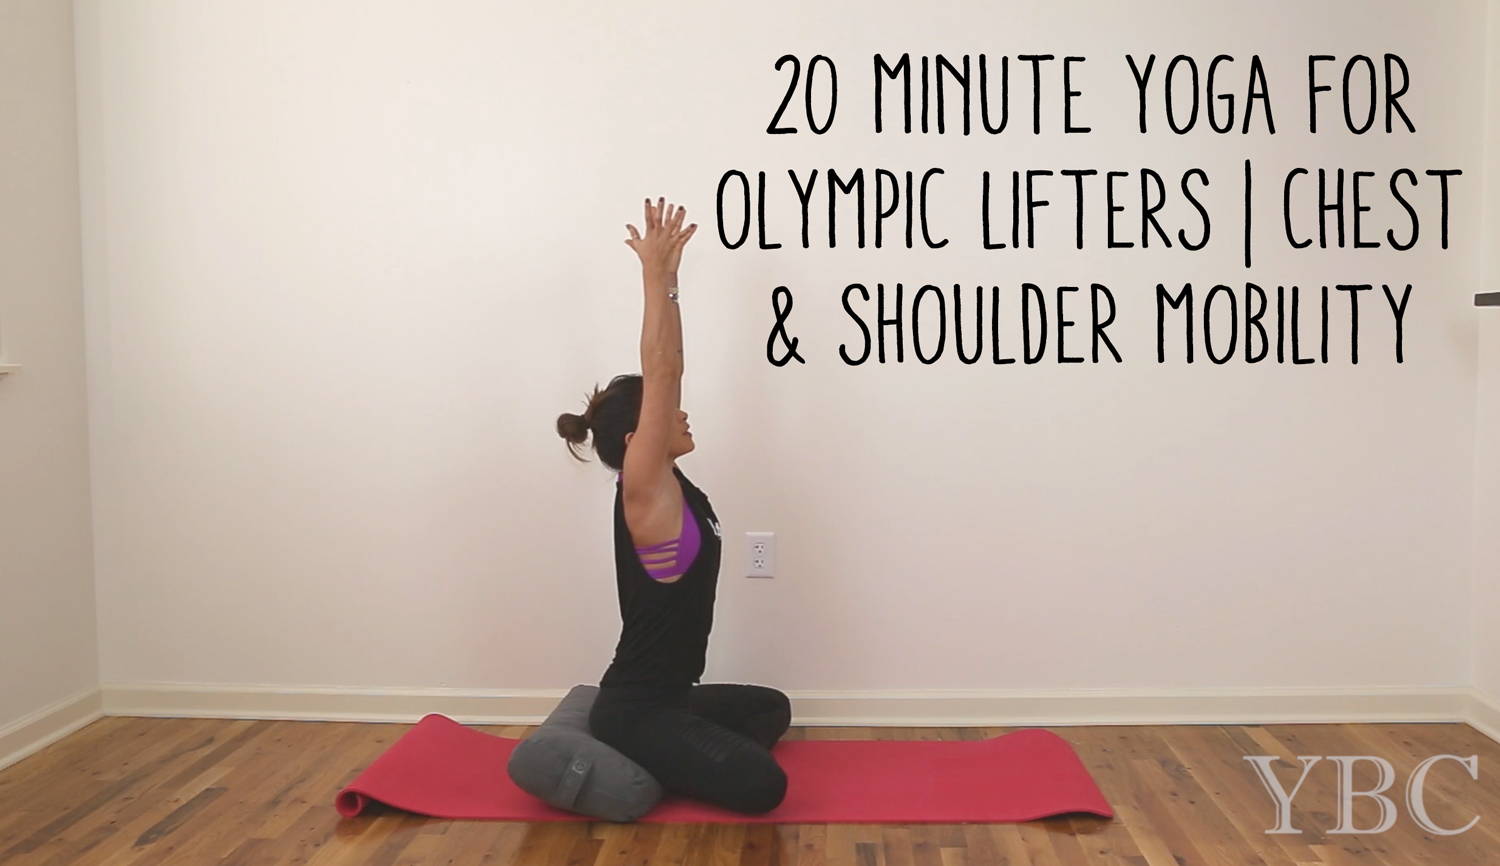 Pin now and practice later!  20 Minute Yoga for Olympic Lifters - chest and shoulder mobility  Wearing: Moto Leggings & tank c/o  Evolve Fitwear . Bra by  Sadhana Clothing .